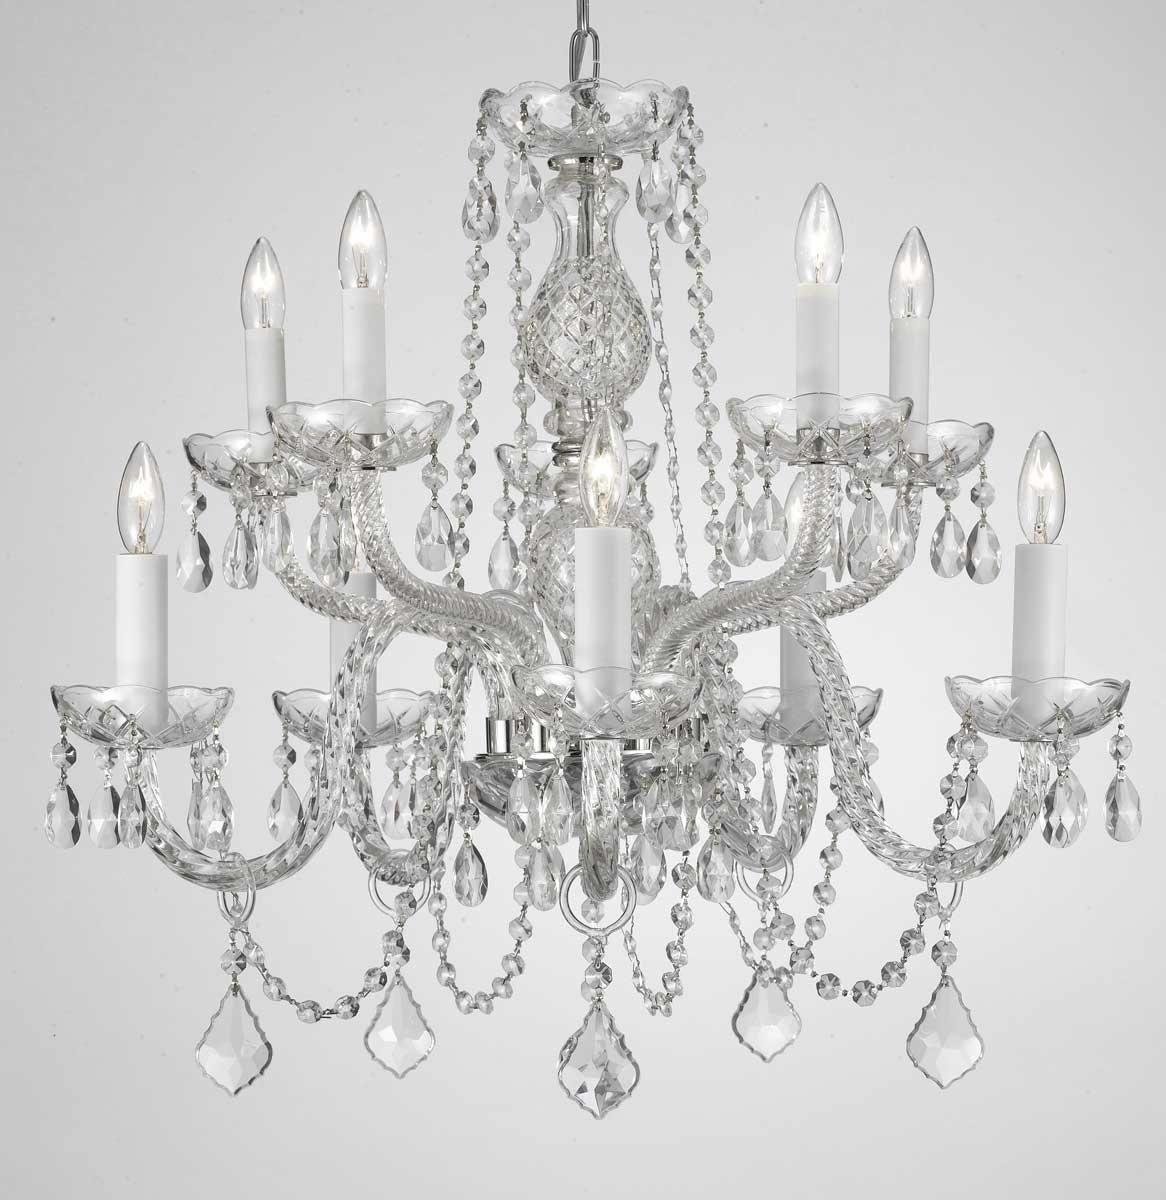 Chandelier lighting crystal chandeliers h25 x w24 10 lights chandelier lighting crystal chandeliers h25 x w24 10 lights amazon arubaitofo Gallery